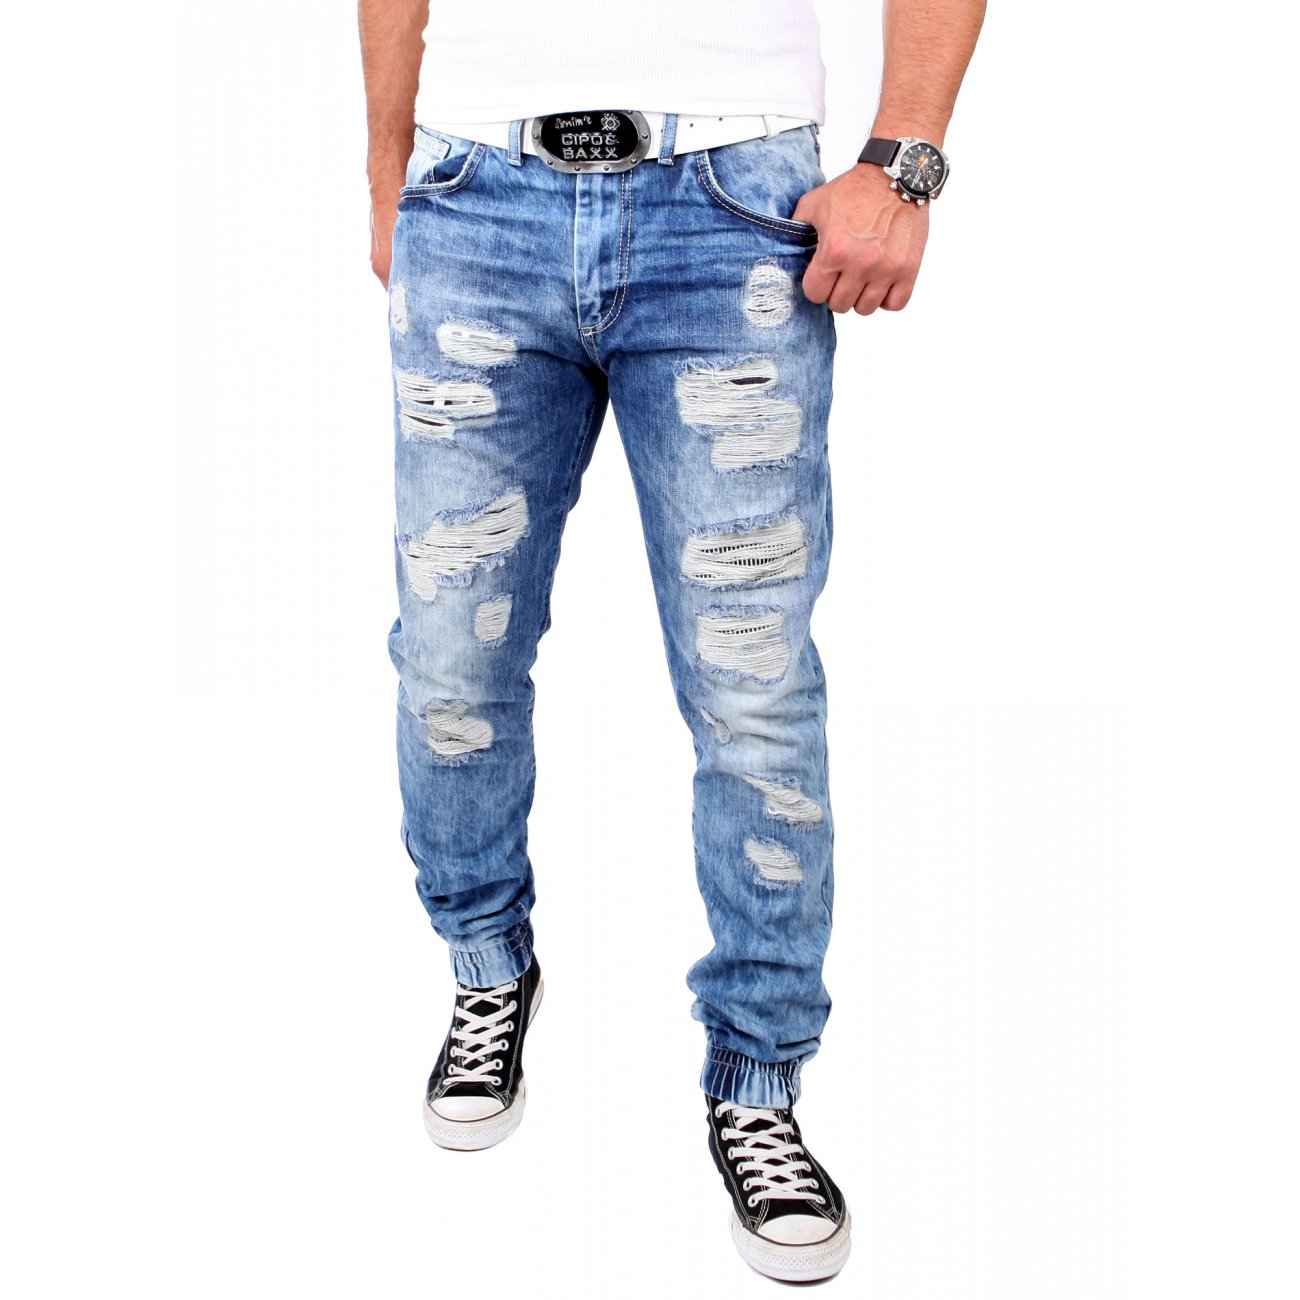 rerock jeans jogginghose destroyed jogg jeans hose. Black Bedroom Furniture Sets. Home Design Ideas